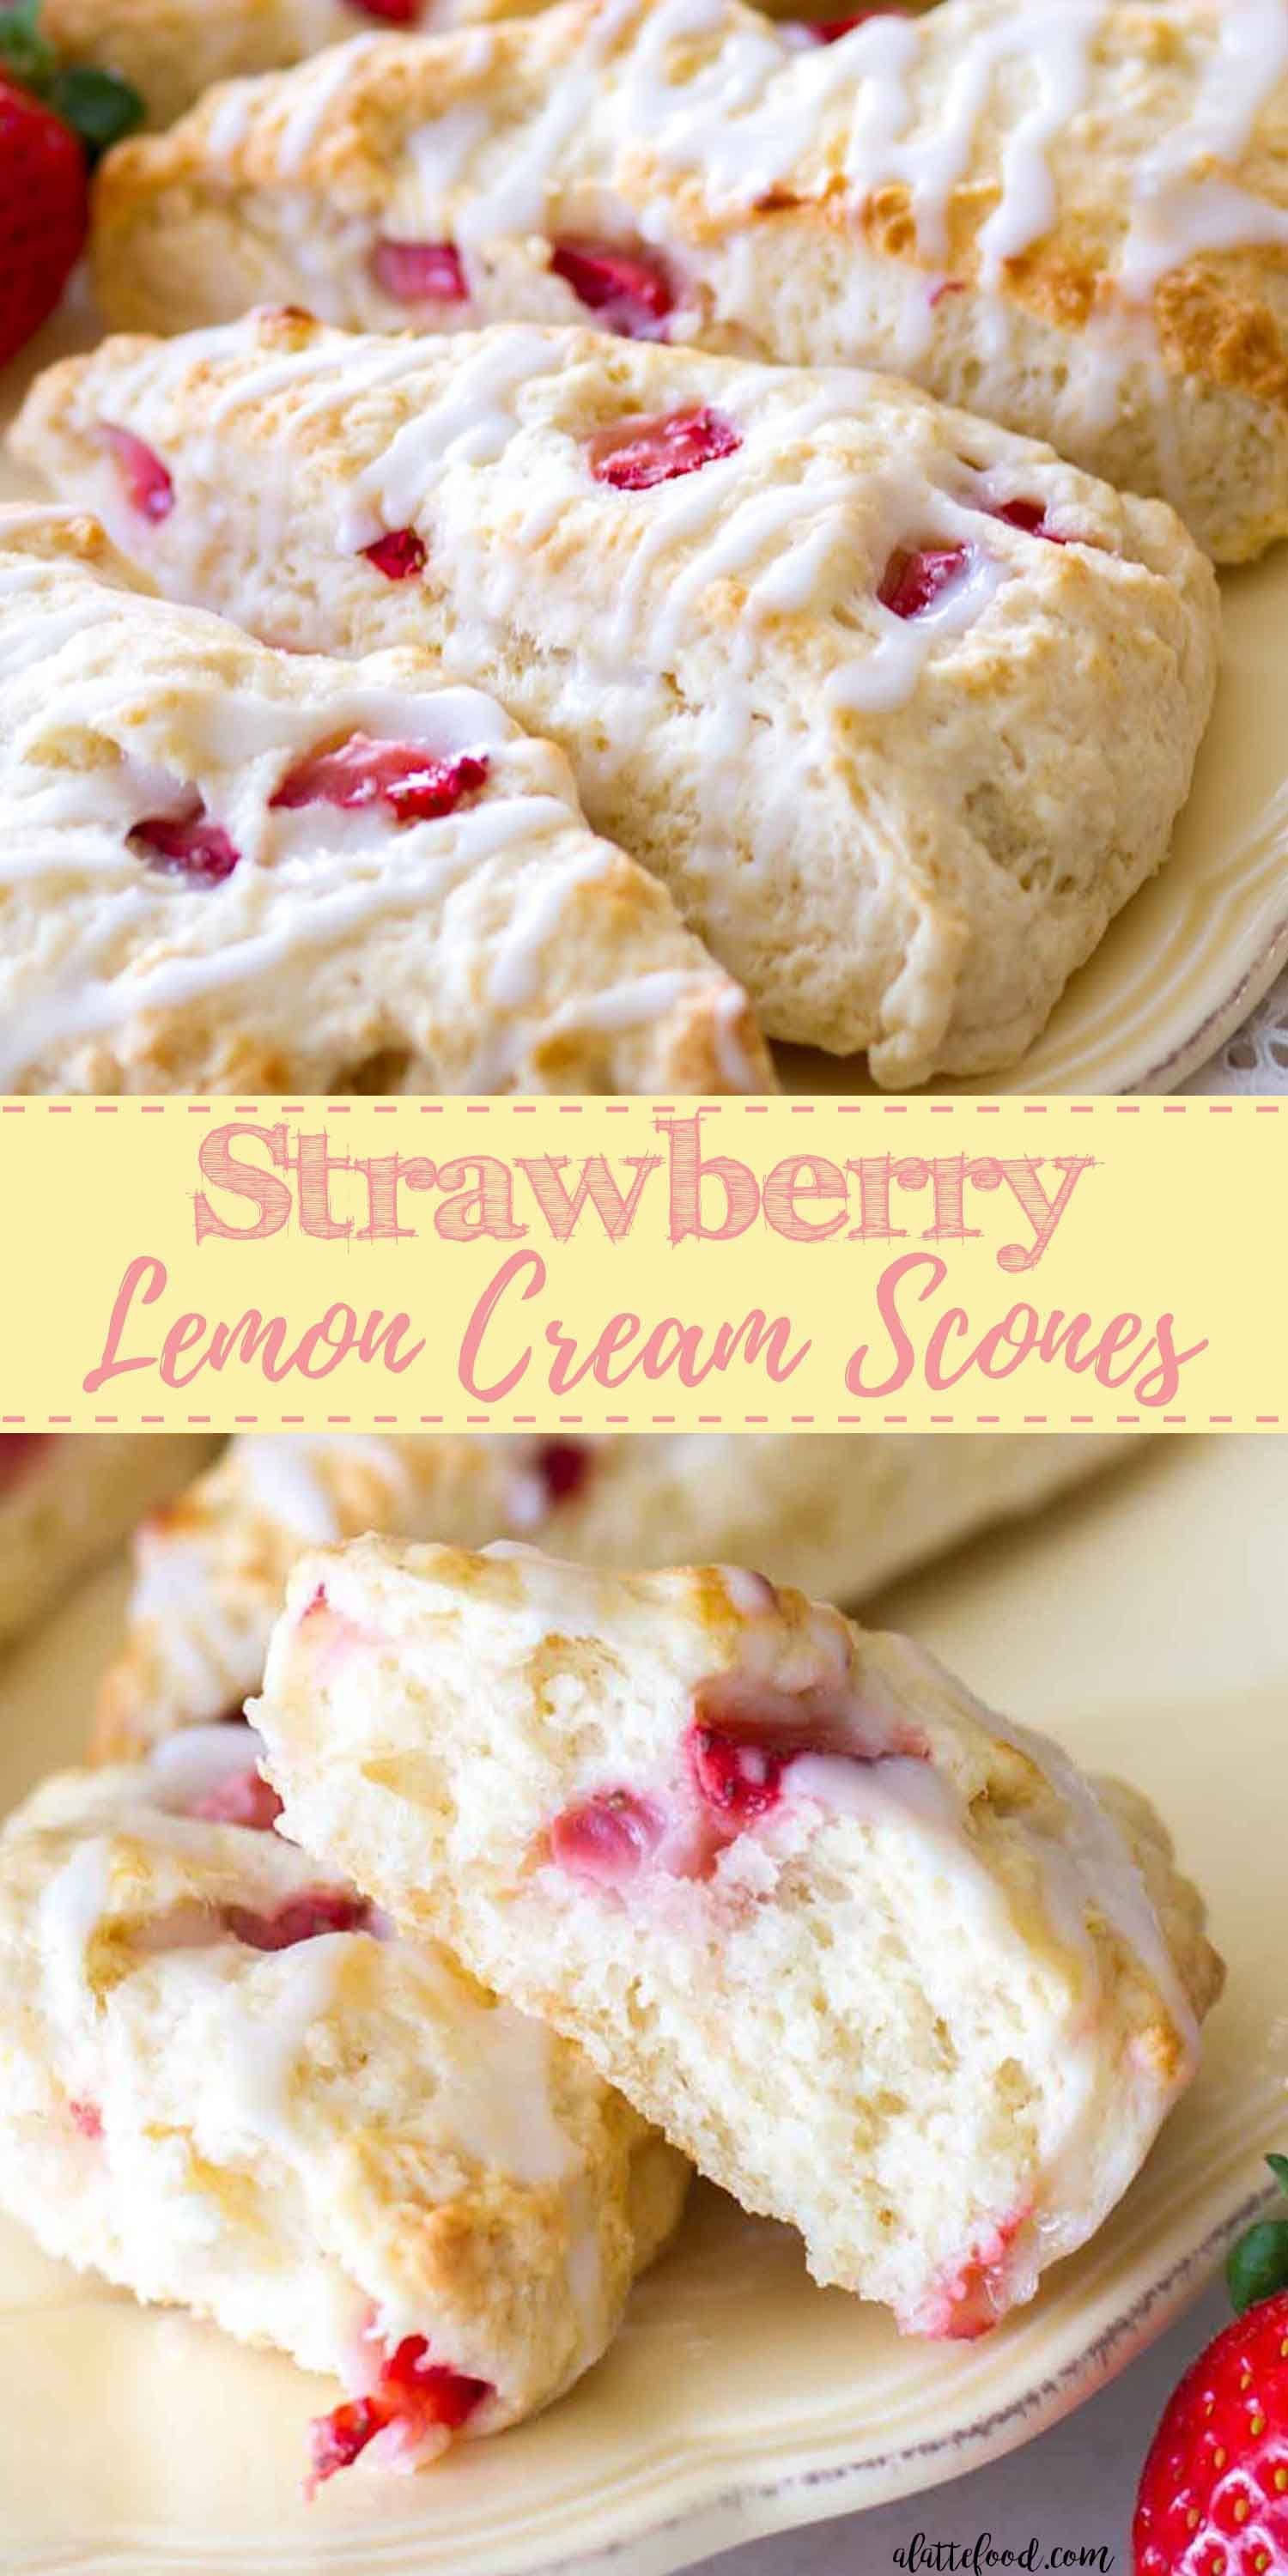 These easy strawberry lemon cream scones are made with fresh strawberries and topped with a homemade lemon glaze! These homemade strawberry scones make an easy breakfast recipe, brunch dish, or afternoon snack! This is one of my favorite classic scone recipes! easy strawberry lemon cream scones are made with fresh strawberries and topped with a homemade lemon glaze! These homemade strawberry scones make an easy breakfast recipe, brunch dish, or afternoon snack! This is one of my favorite classic scone recipes!